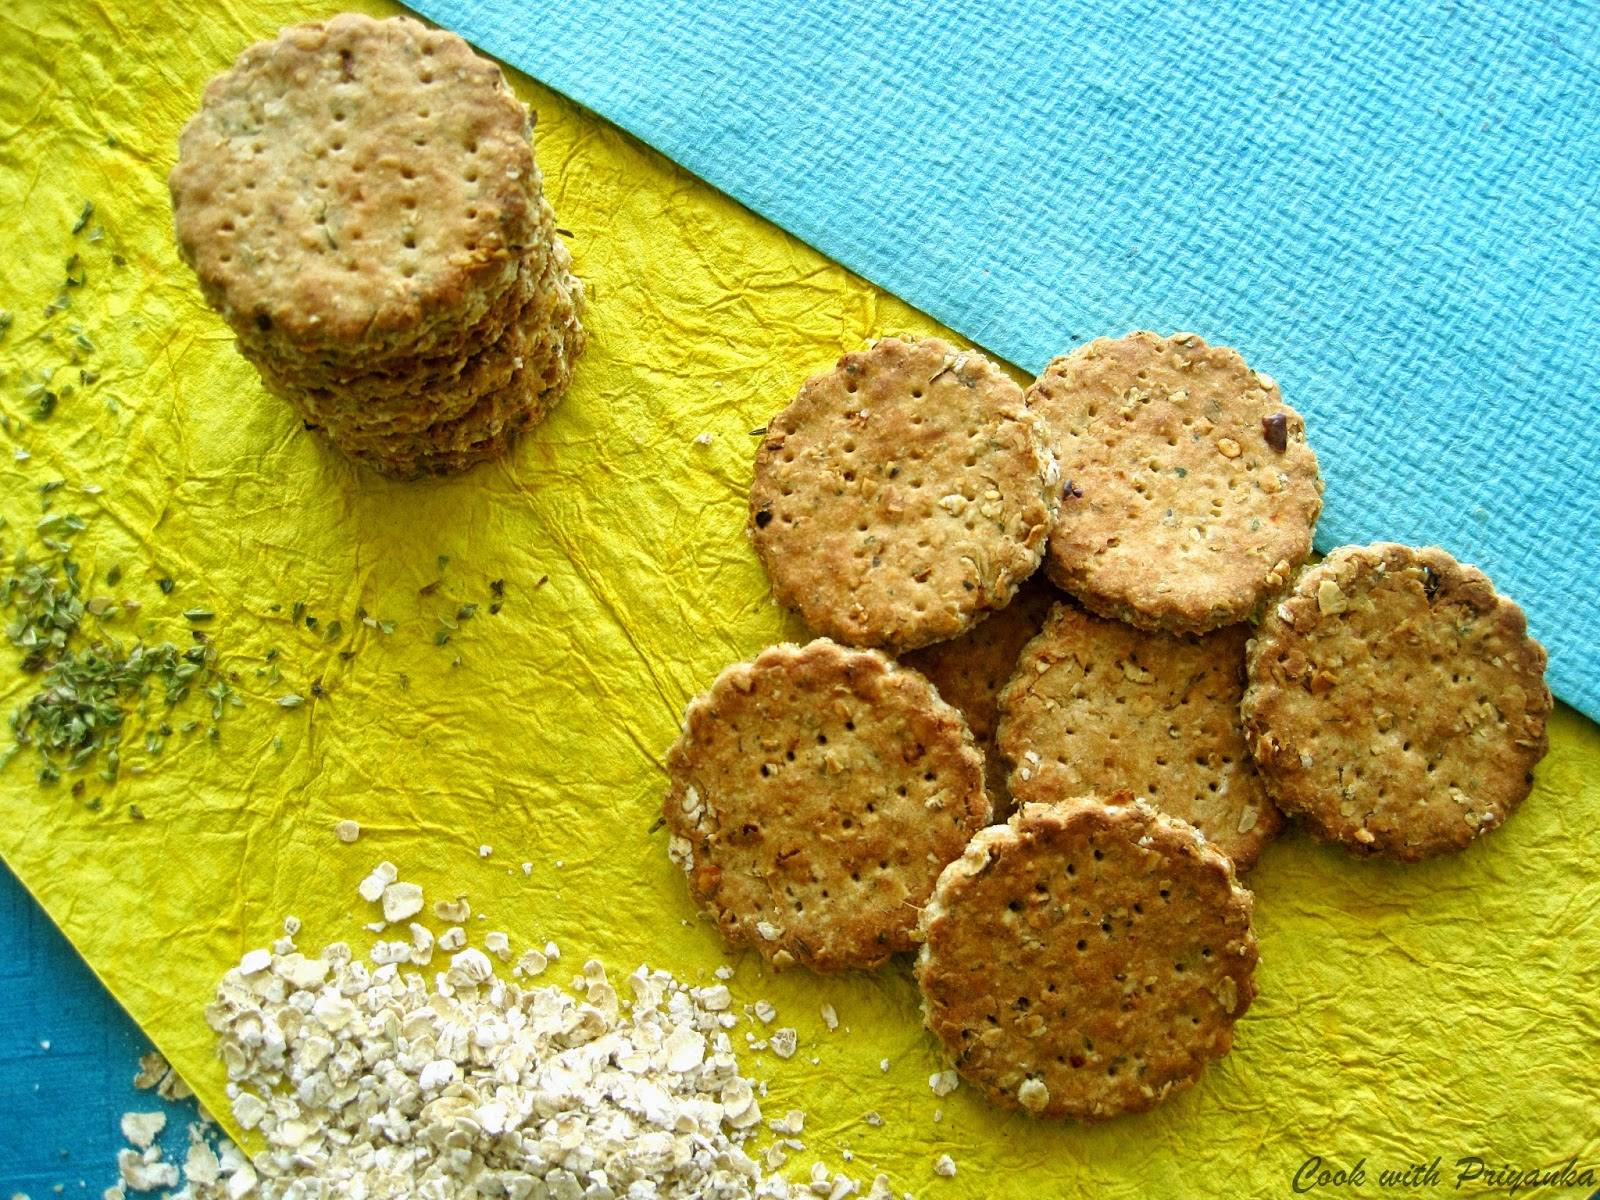 http://cookwithpriyankavarma.blogspot.co.uk/2014/04/oats-whole-wheat-crackers-with-kick-of.html